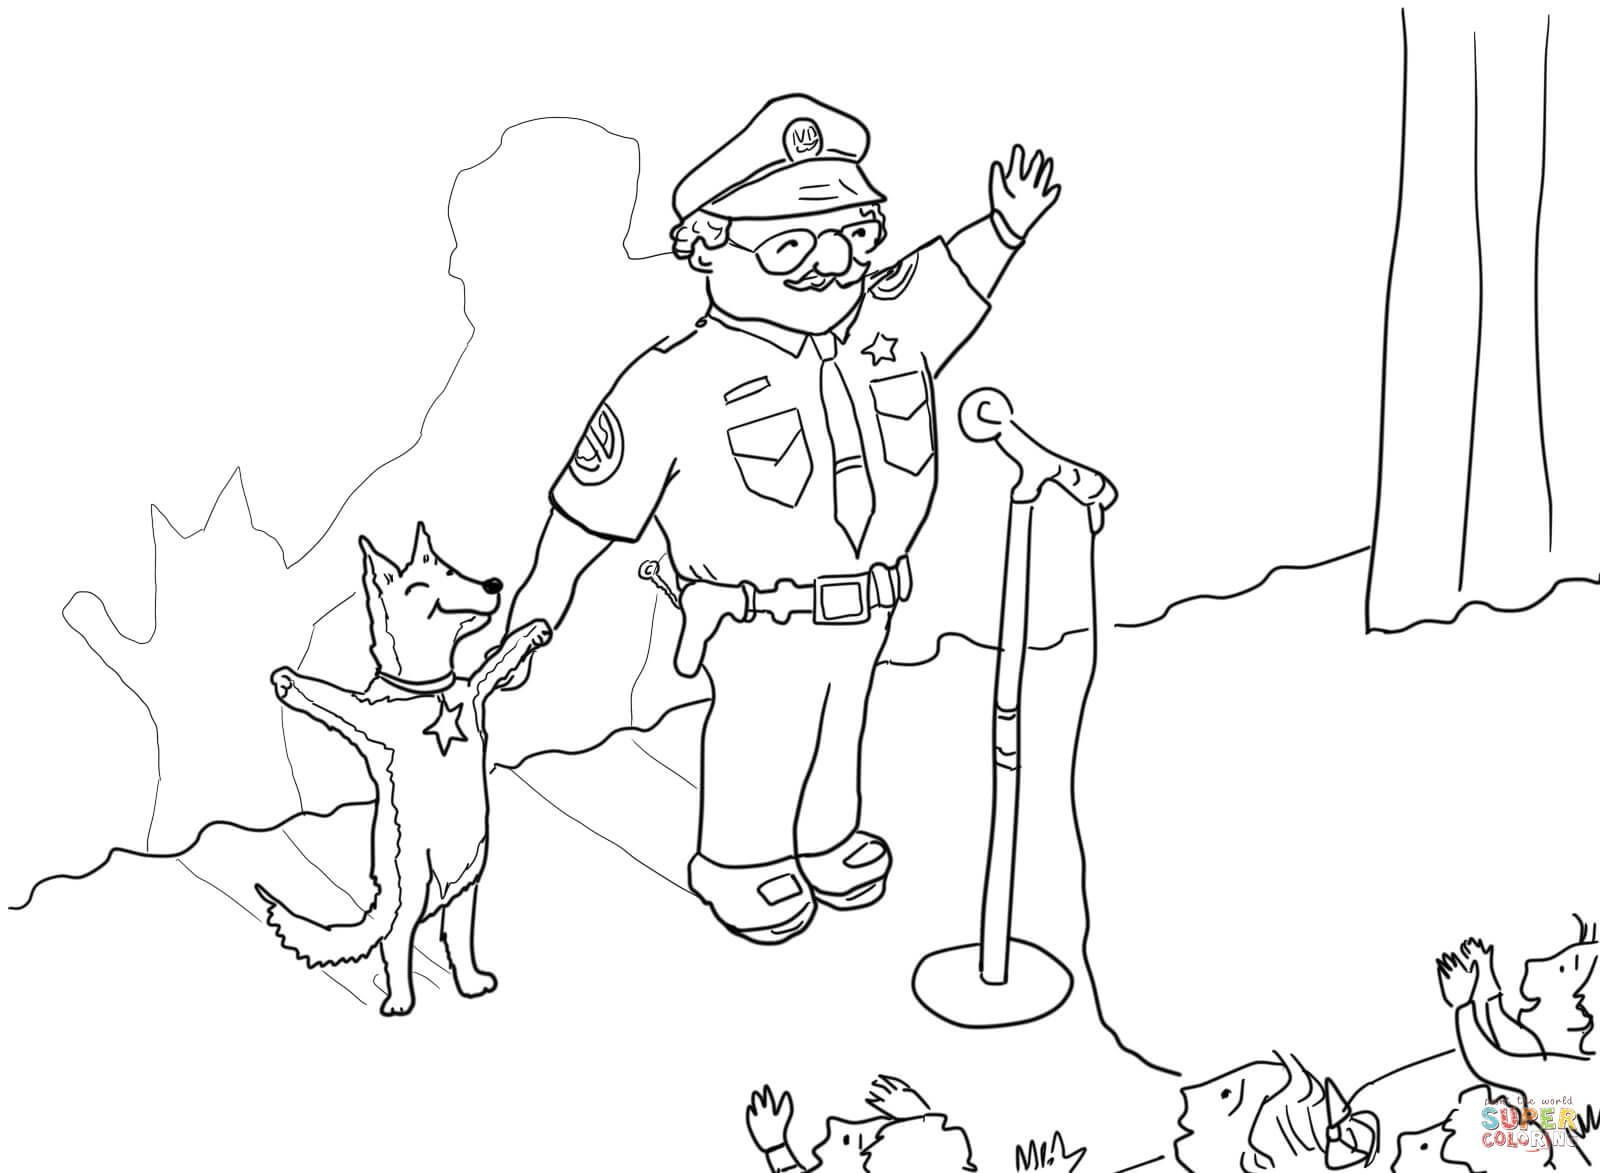 Worksheets Officer Buckle And Gloria Worksheets officer buckle and gloria taking a bow on stage coloring page page